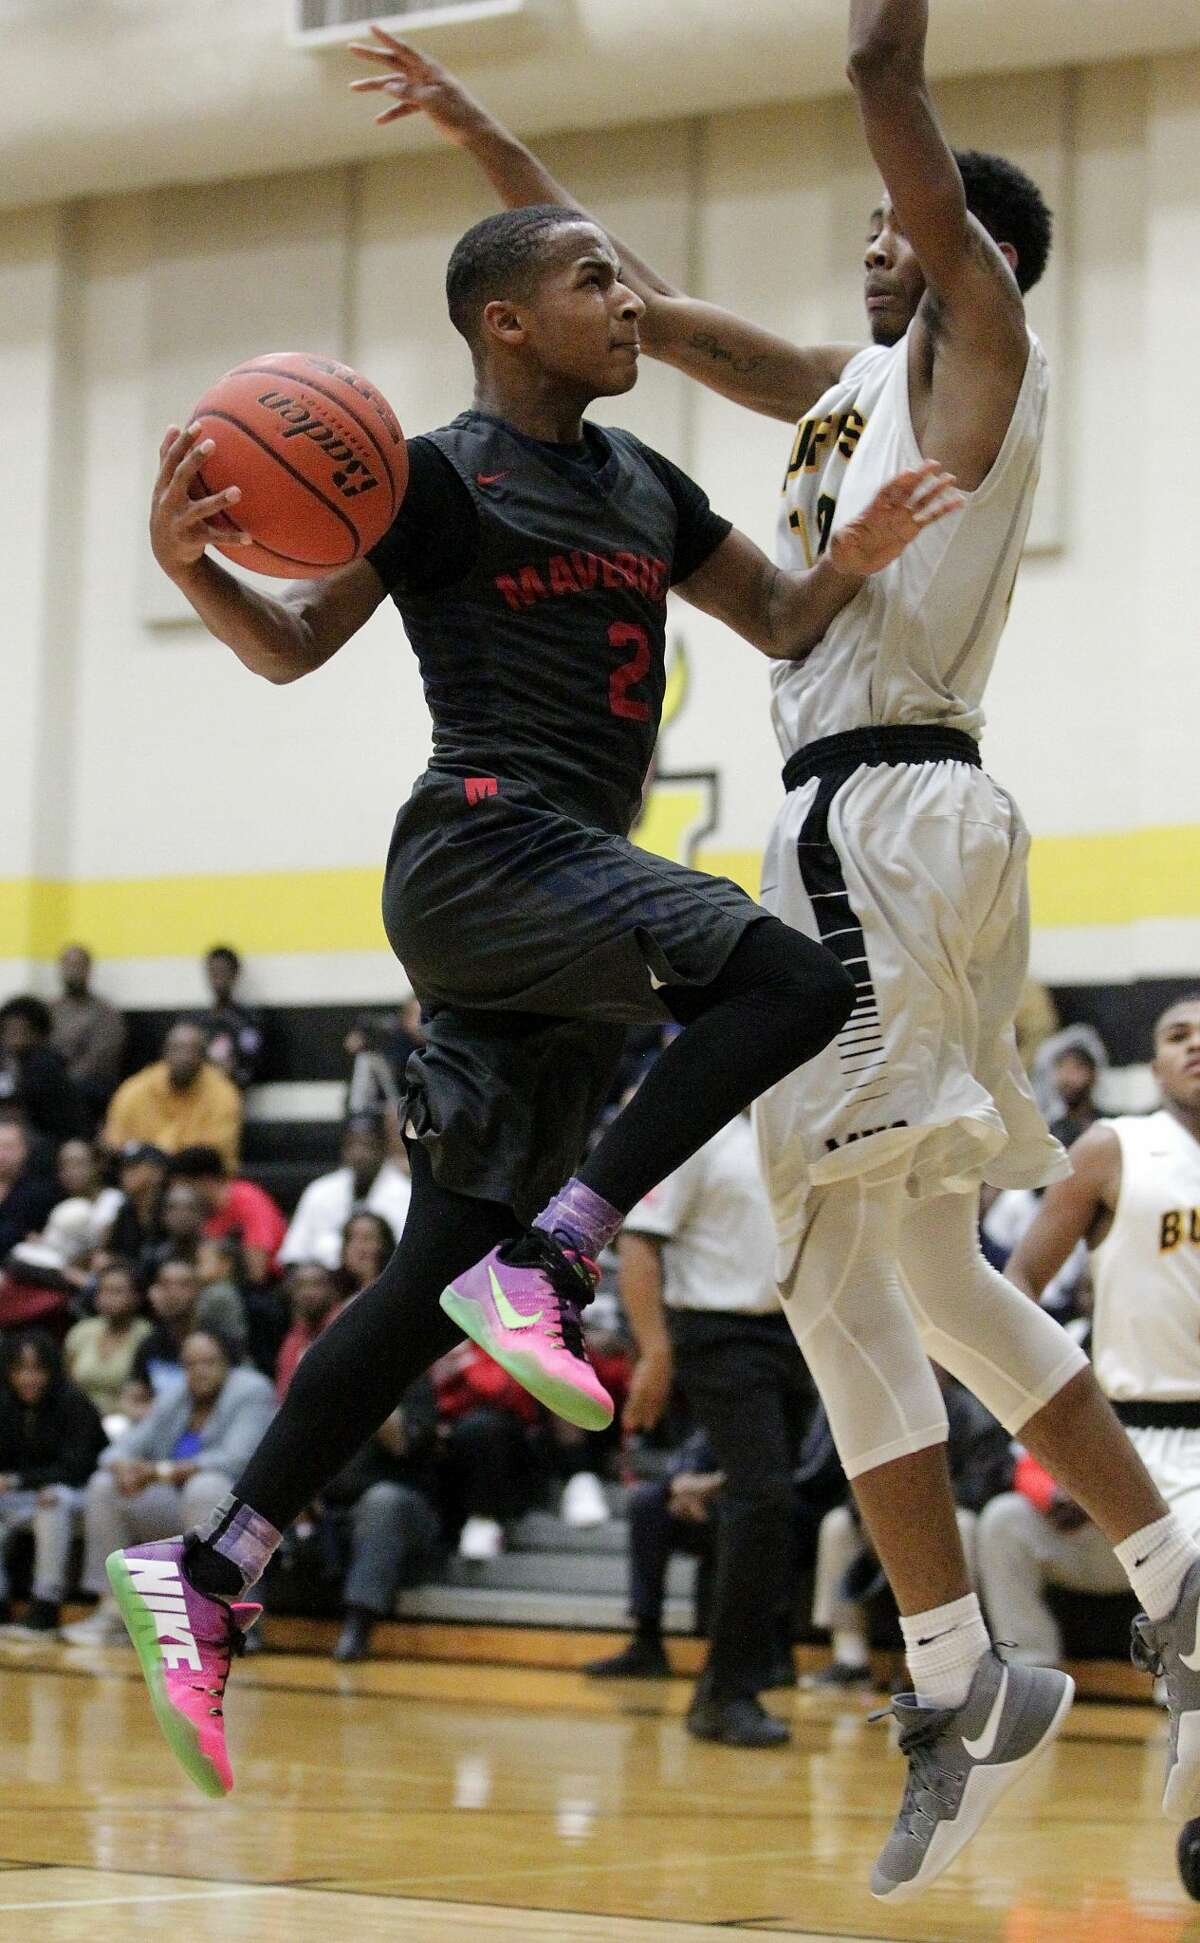 Manvel Vernice Seriale (2) drives to the basket as Fort Bend Marshall Tajzmel Sherman defends during a high school basketball game on Friday, Jan. 27, 2017, in Missouri City. ( J. Patric Schneider / For the Chronicle )